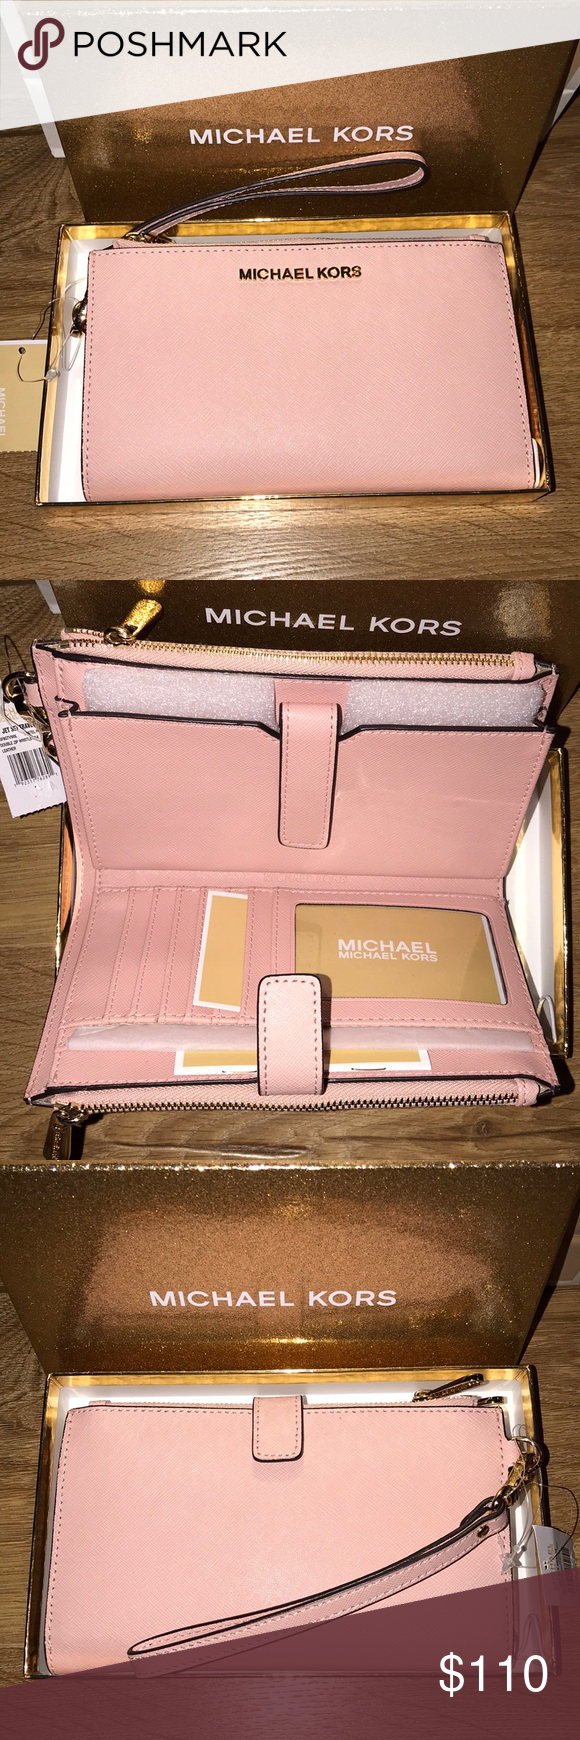 97701da8c16355 Michael Kors Jet Set Travel Double Zip Wristlet Pastel Pink - 35F8GTVWOL  Effortlessly organize your cards